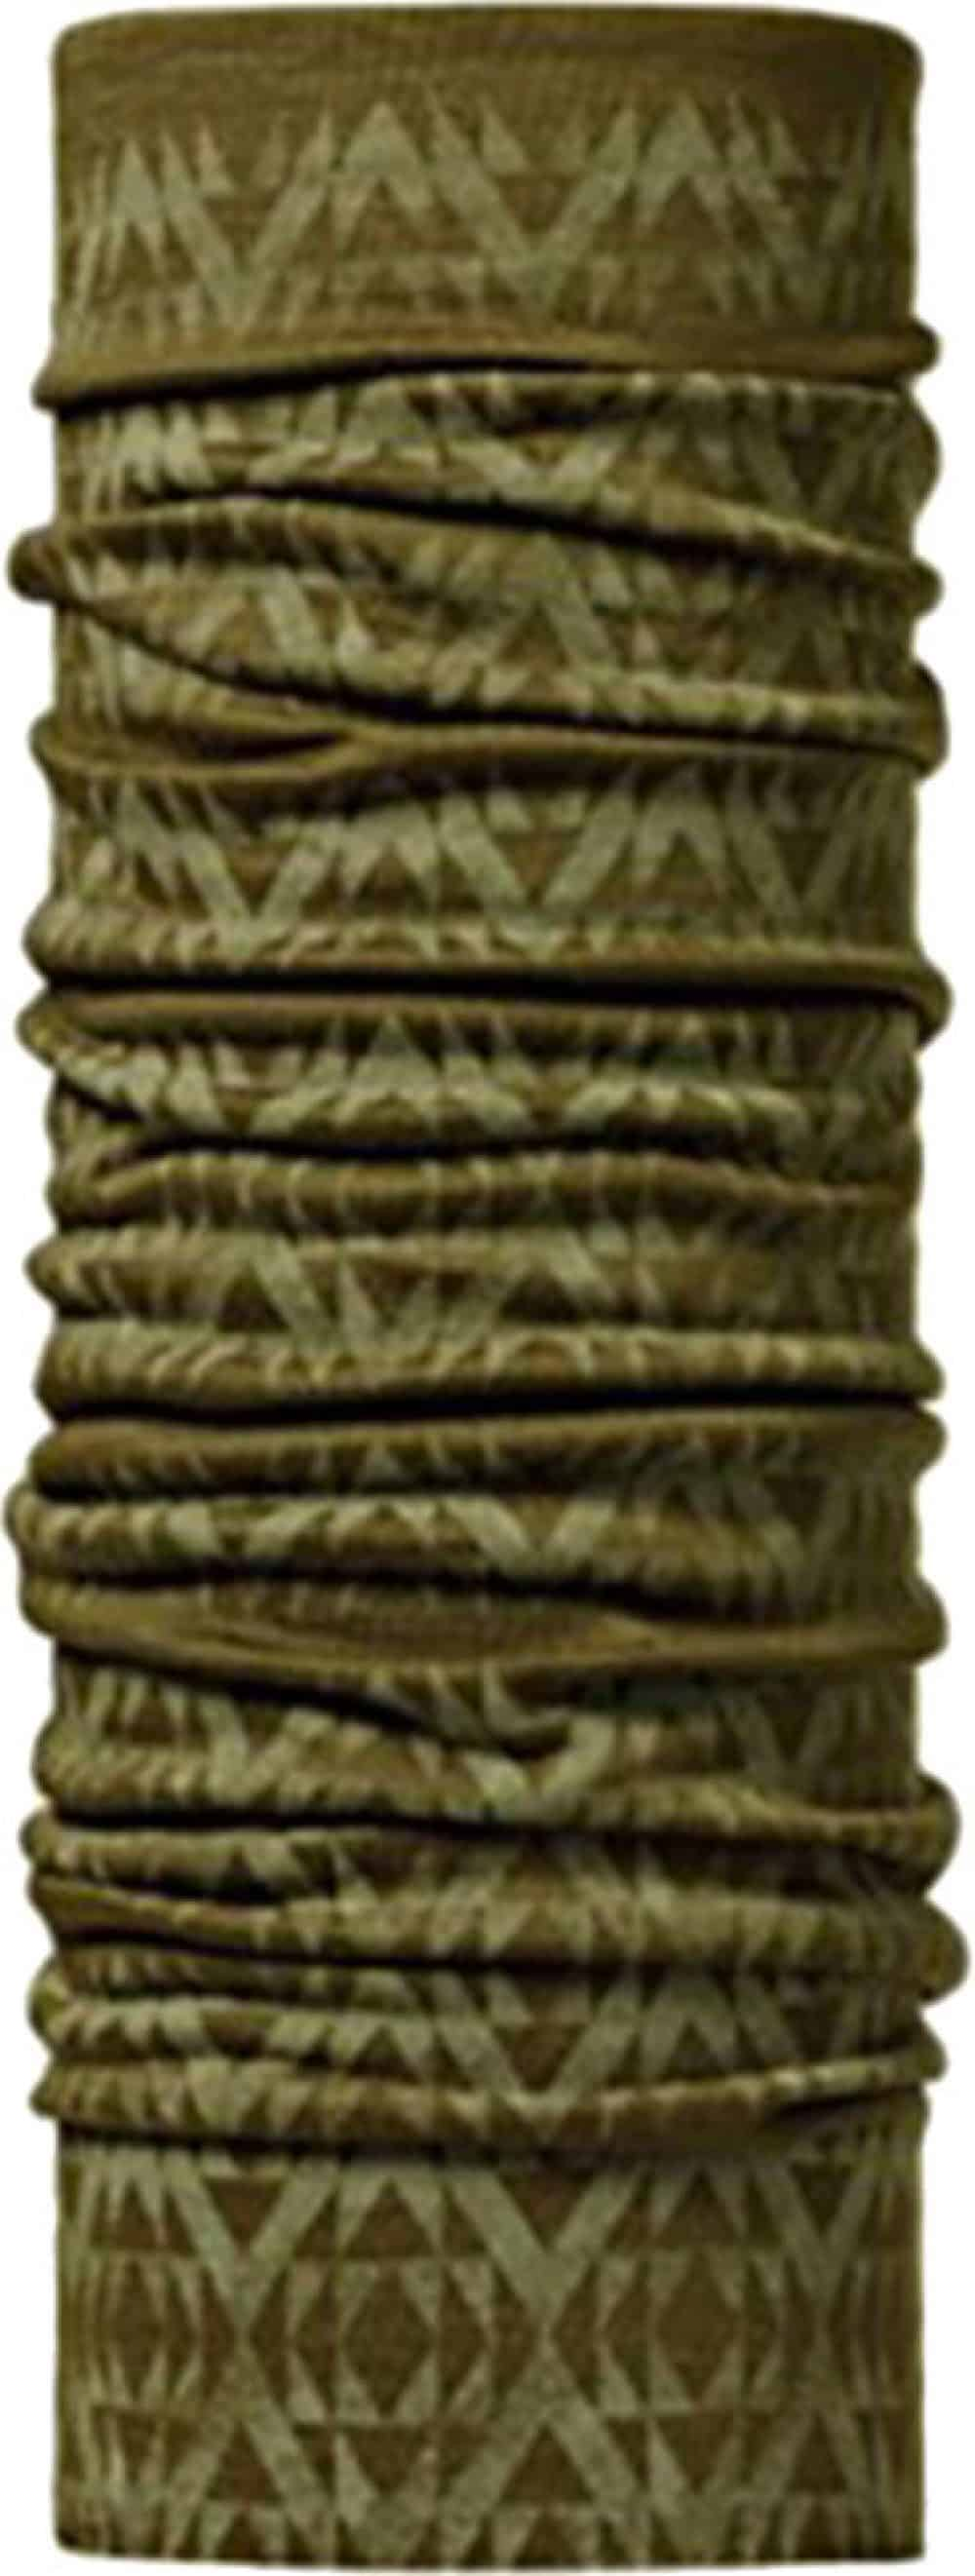 "Studio photo of the Wool Buff® Design ""Neo Cedar"". Source: buff.eu"